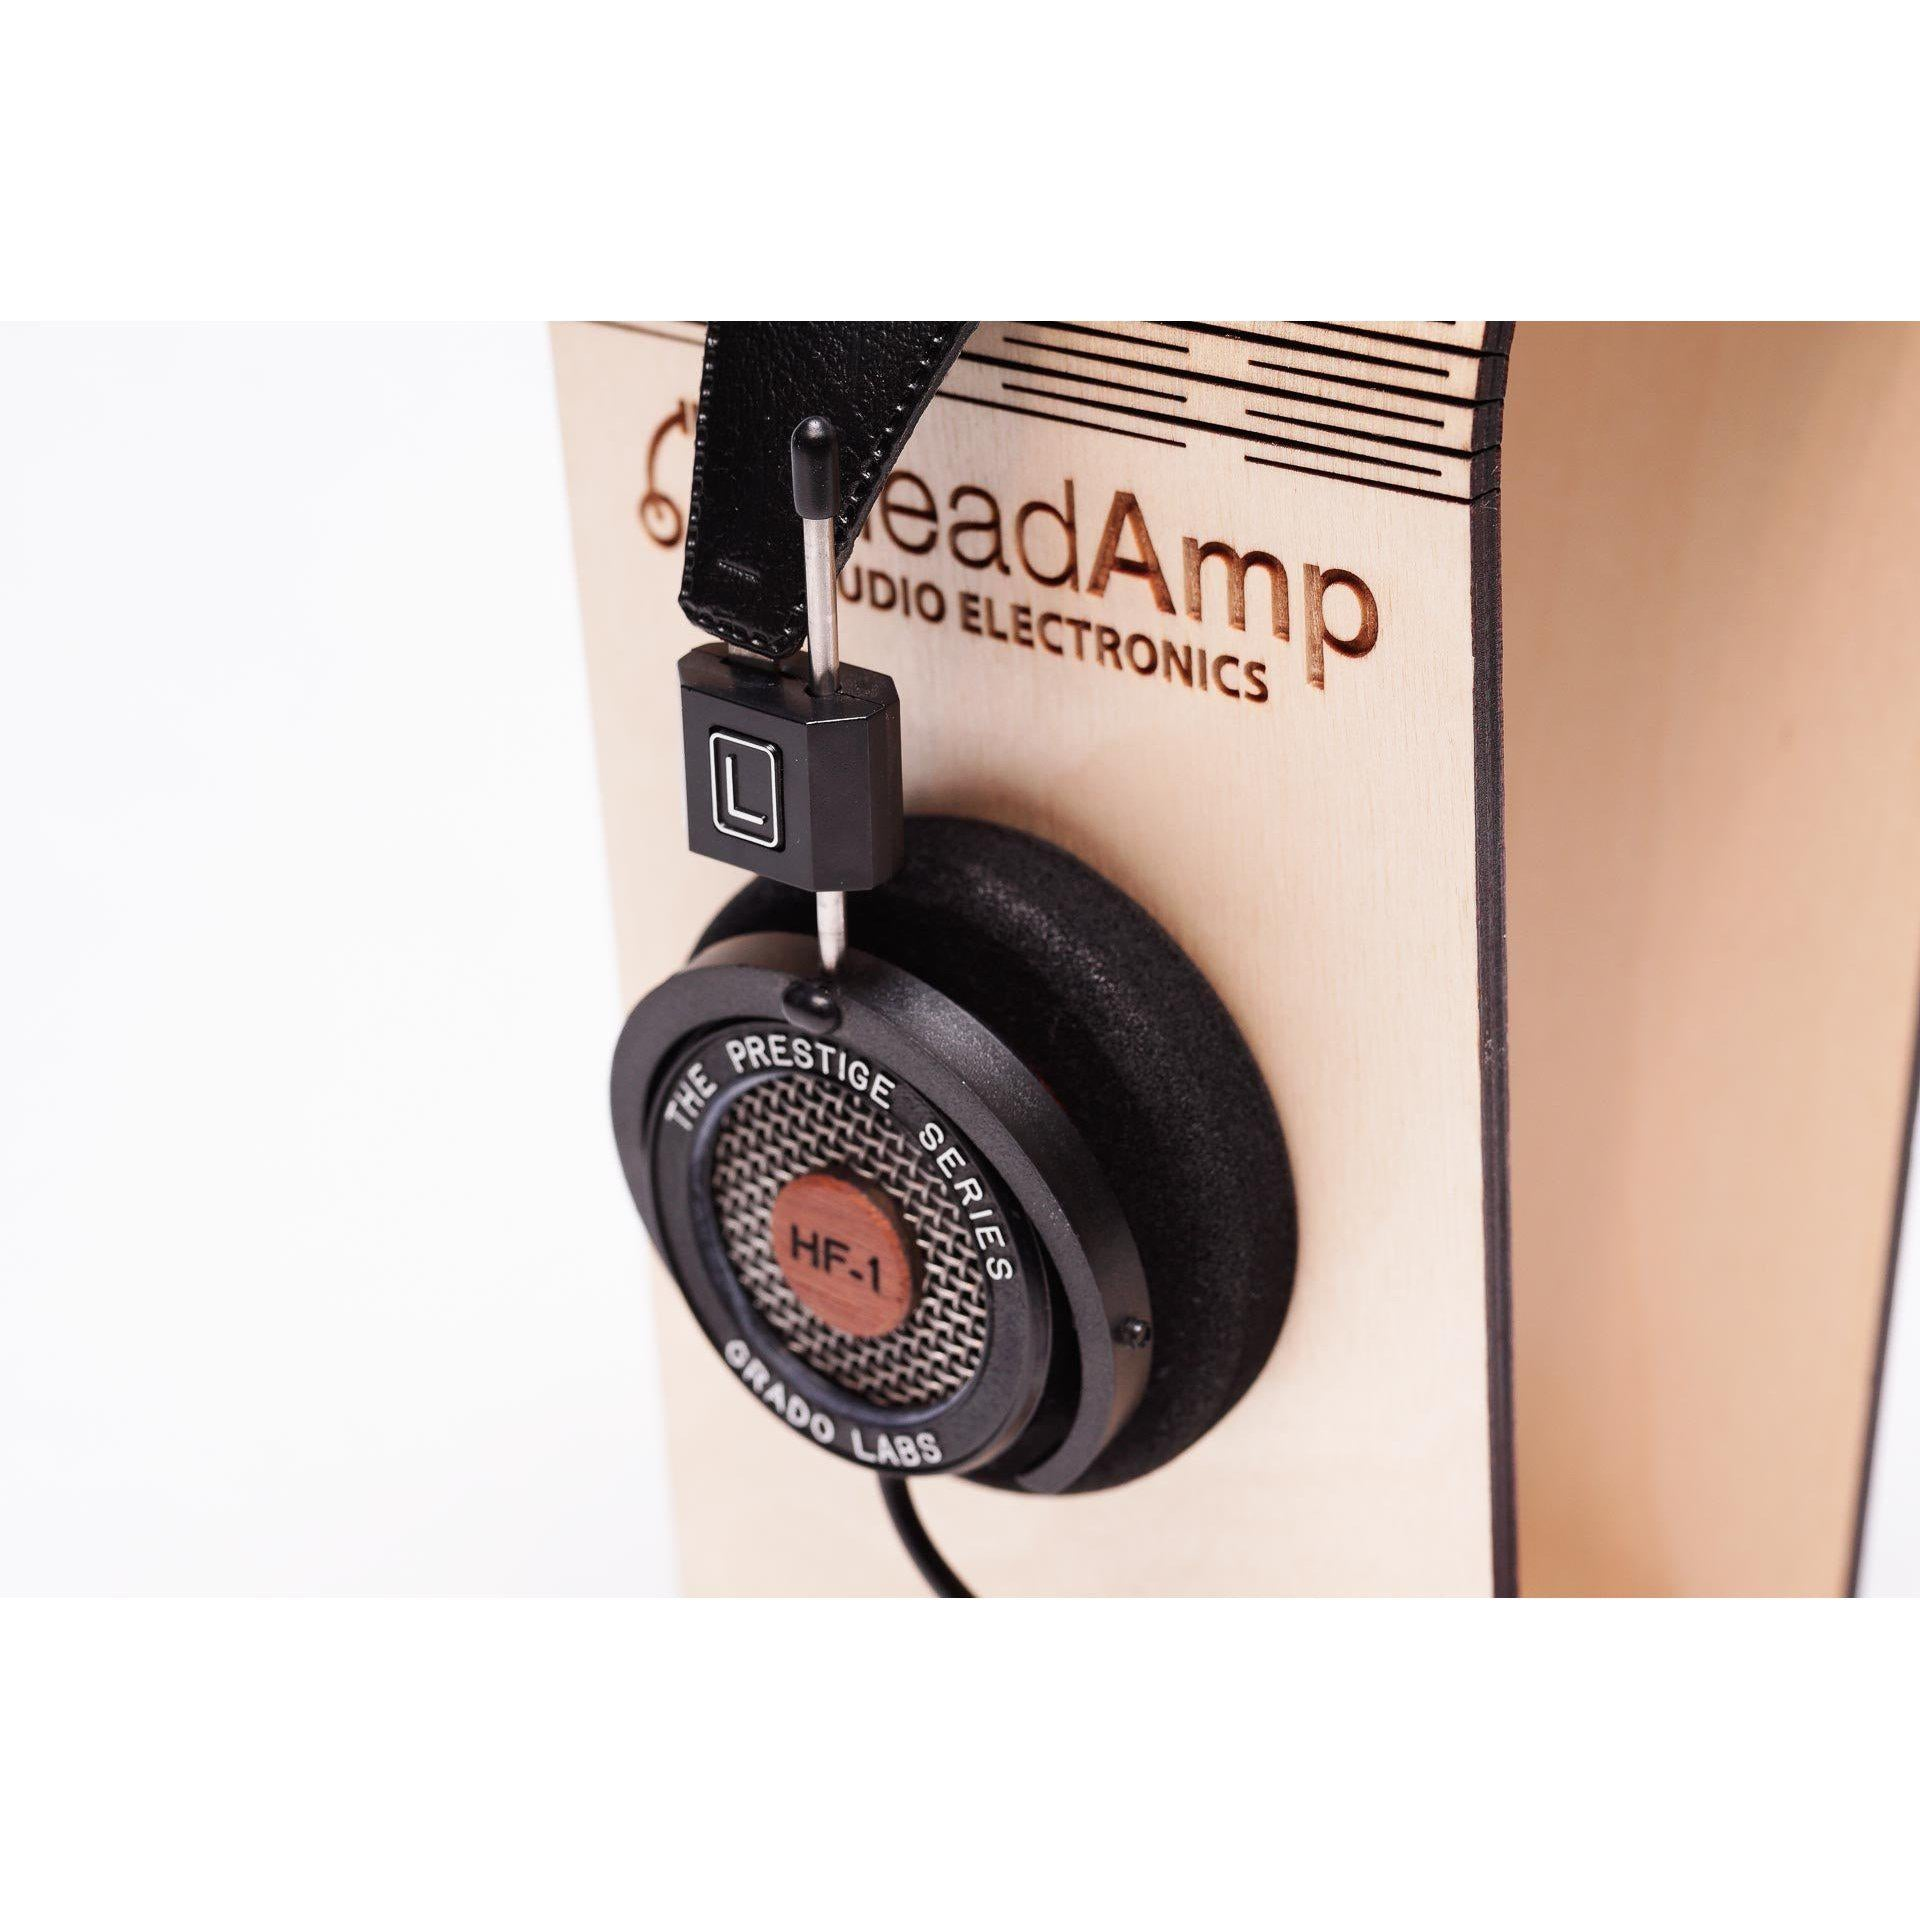 Grado HF-1 Limited Edition Headphone